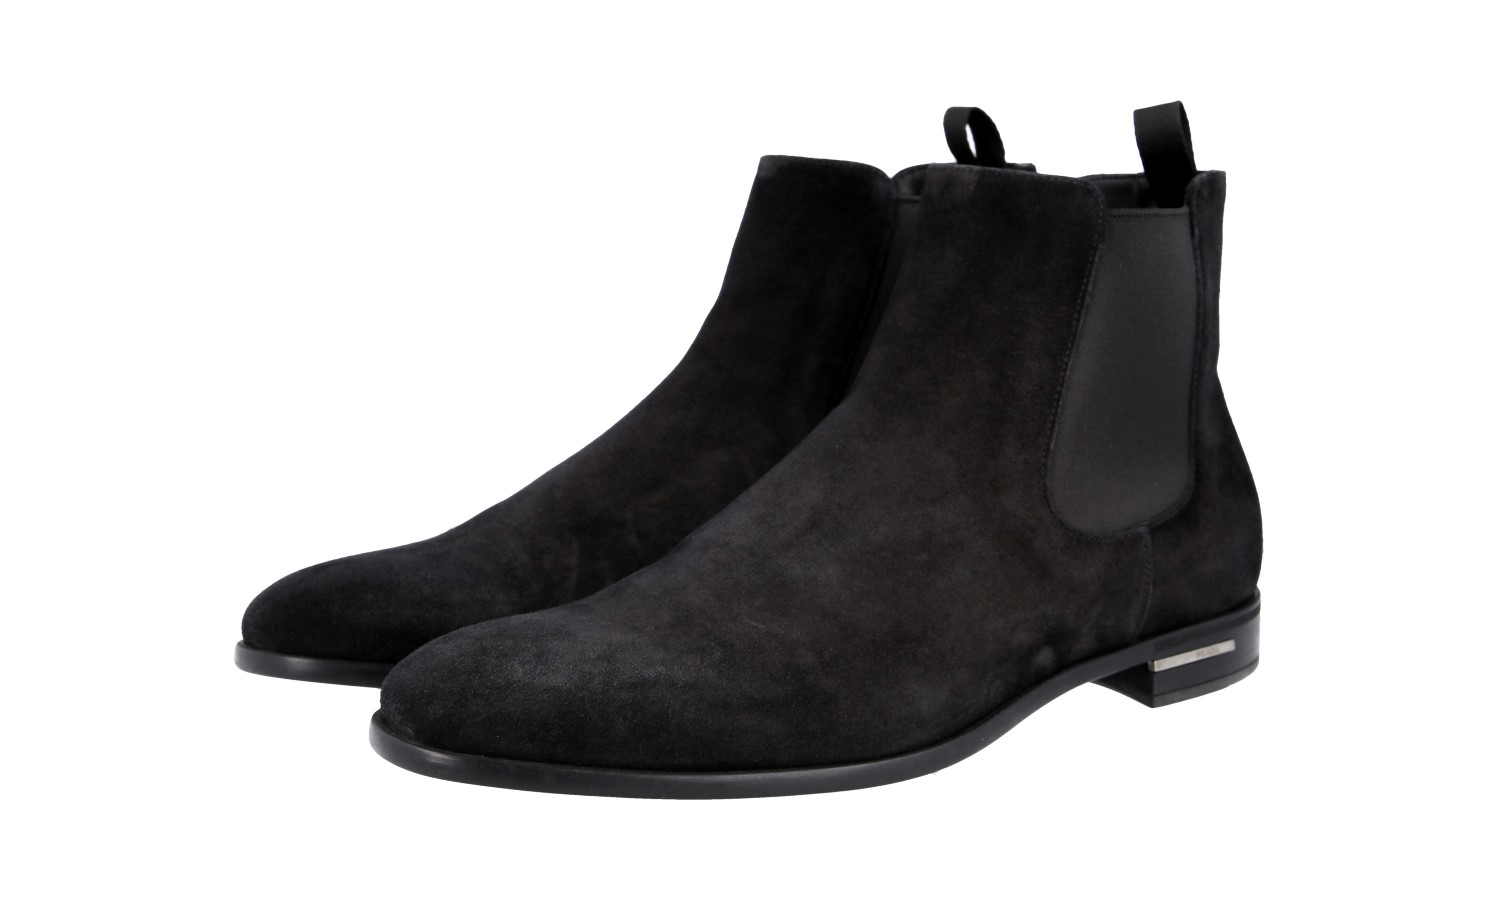 39 Luxury Original Prada Ankle Suede 5 New Show 5 Title Boot Details About 5 40 Shoes 2tc028 Black tshQrdC